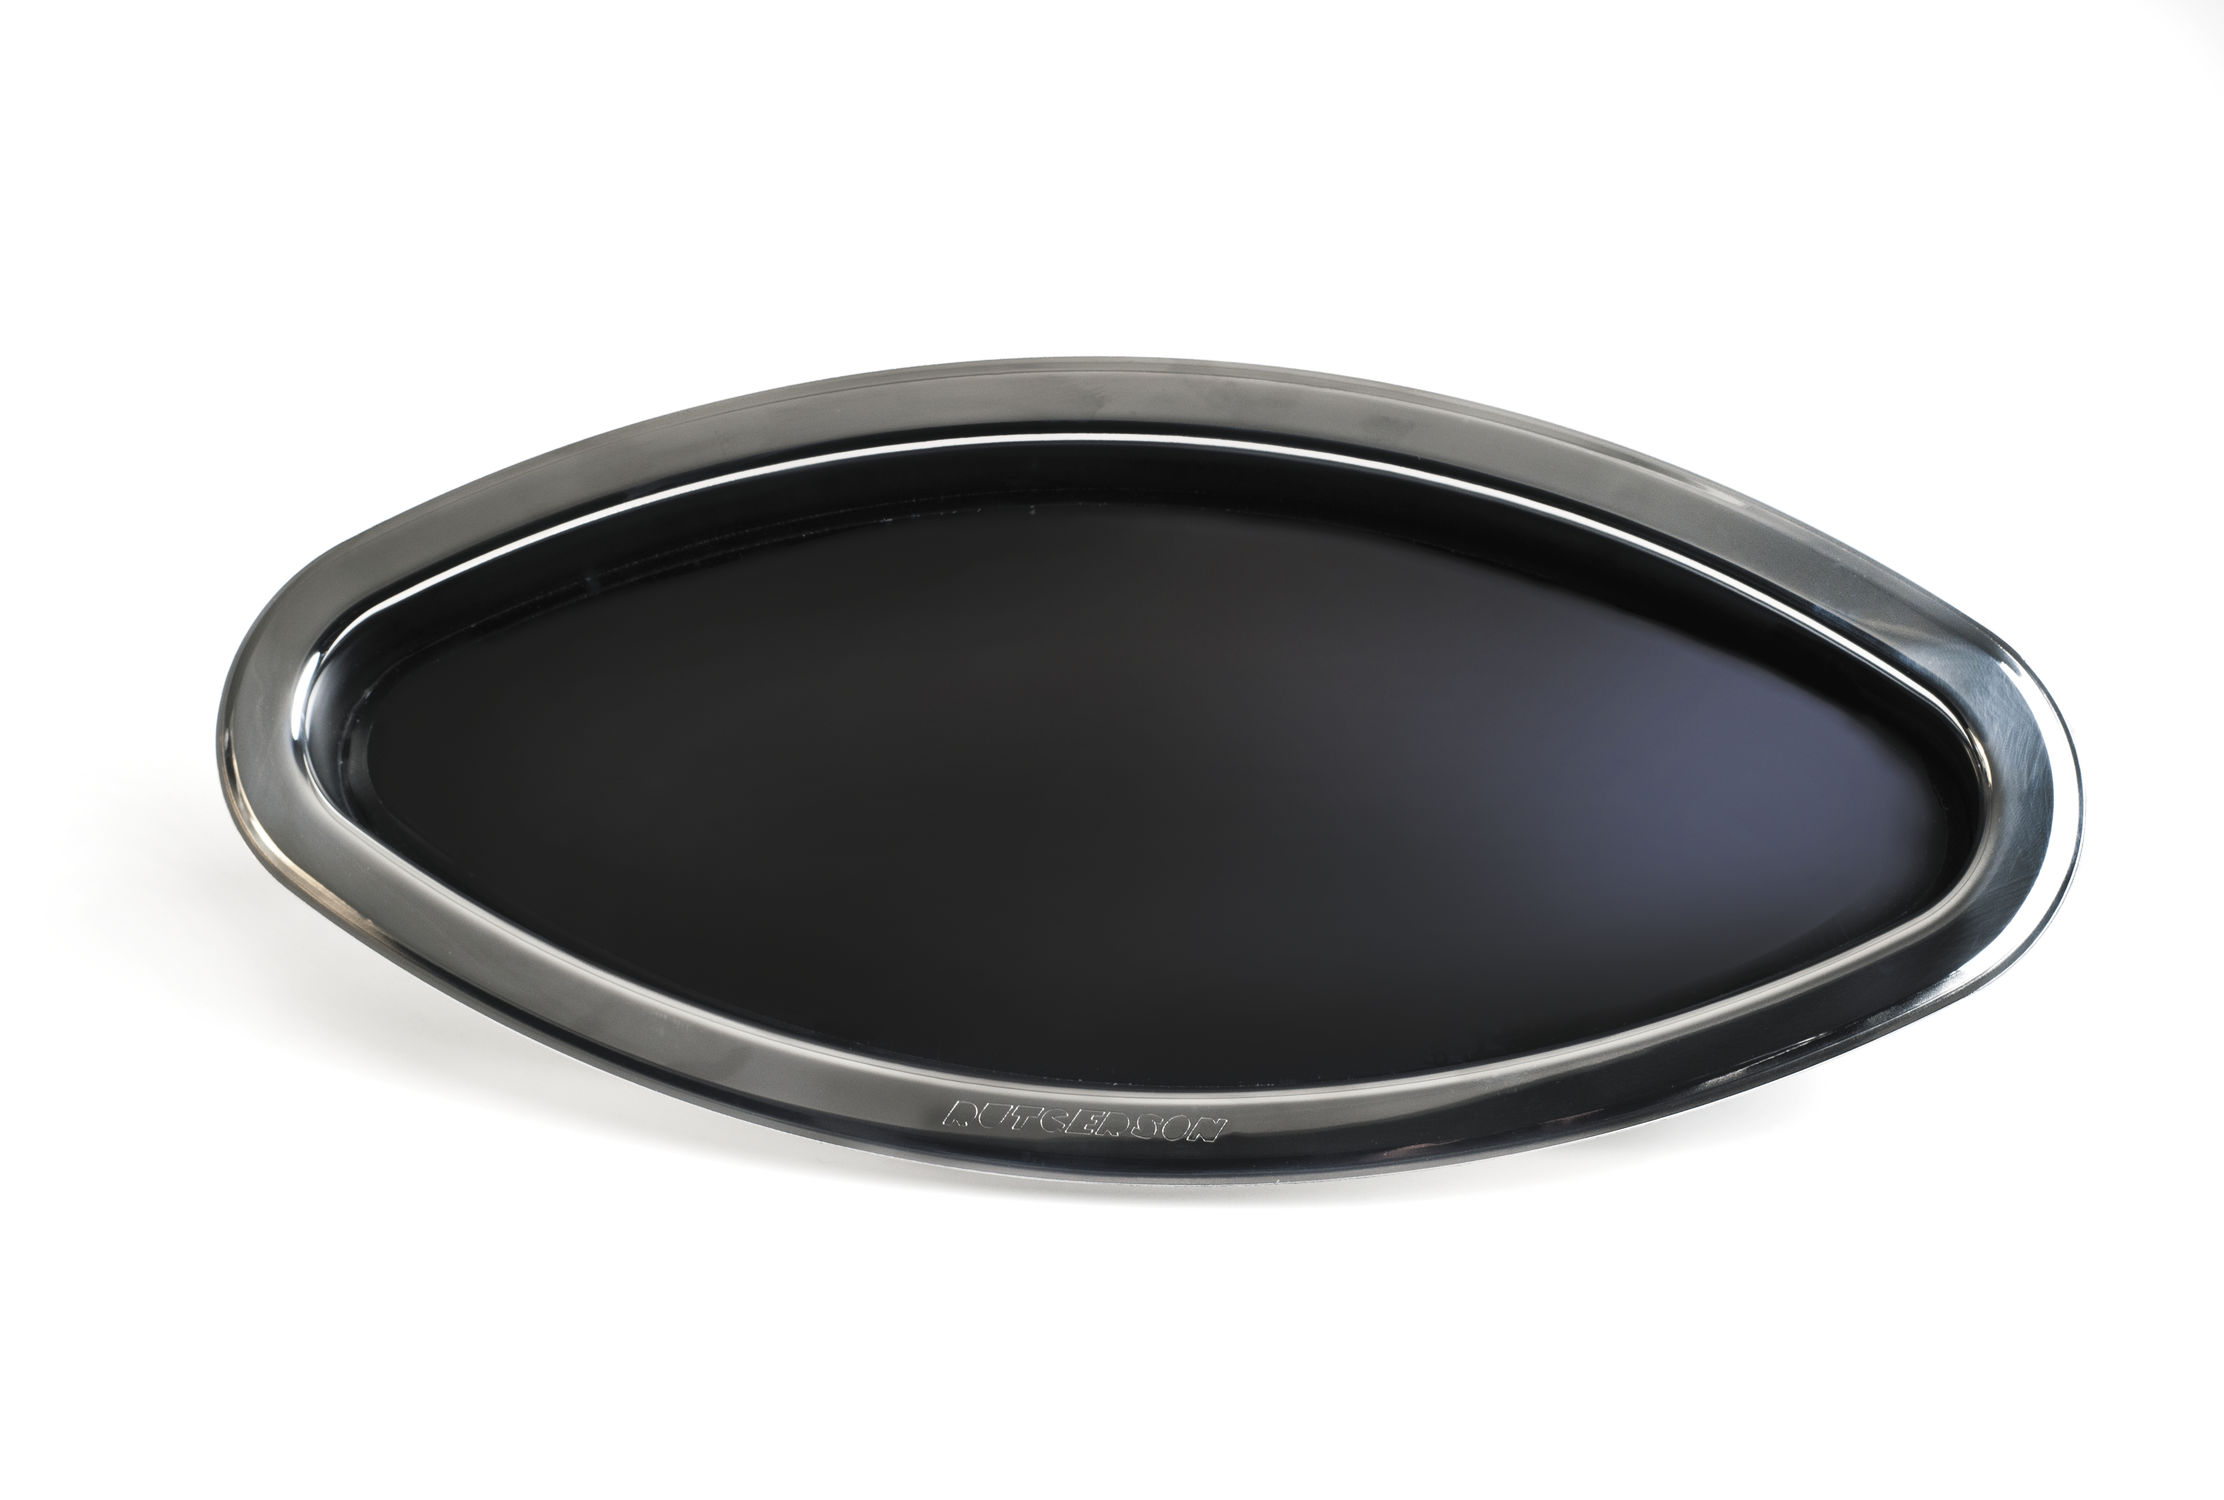 oval portlight for boats with rounded corners a3135 220rf